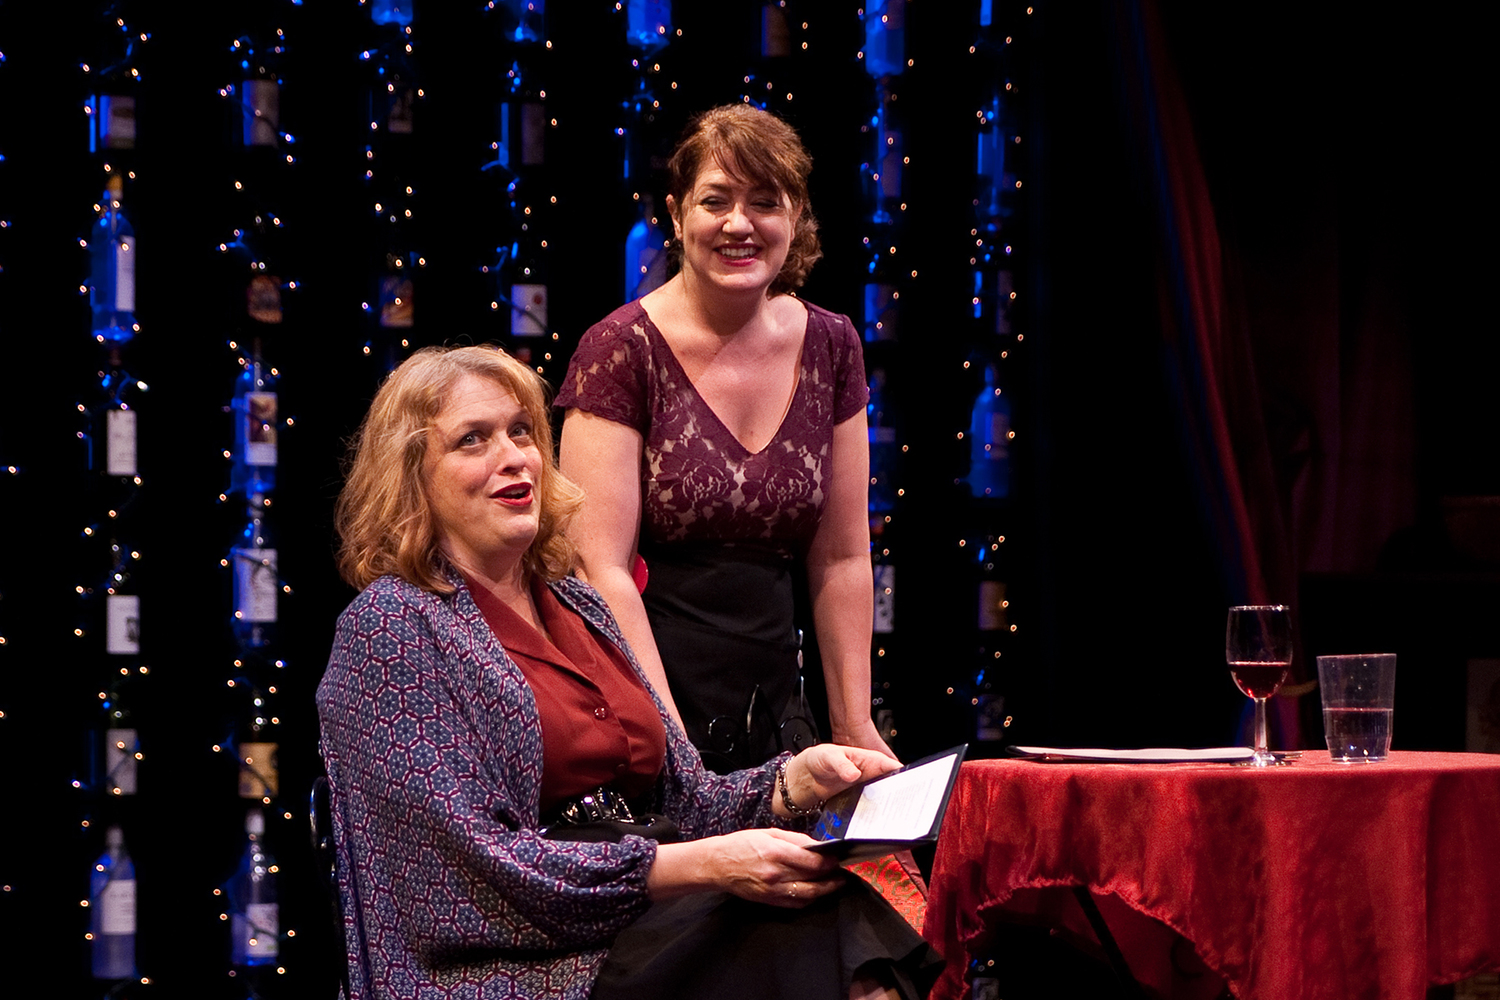 BWW Review: SOMETIMES THERE'S WINE at Park Square Theatre